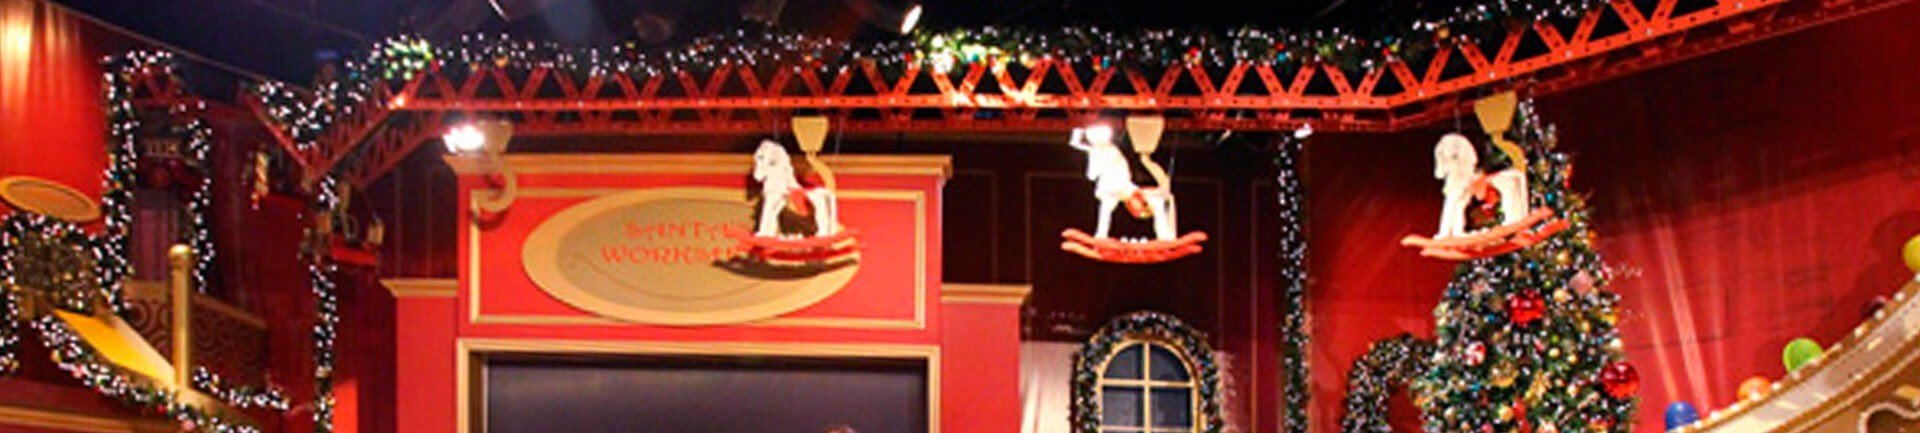 Overhead conveyors for moving sets and props on TV sets and live stages.